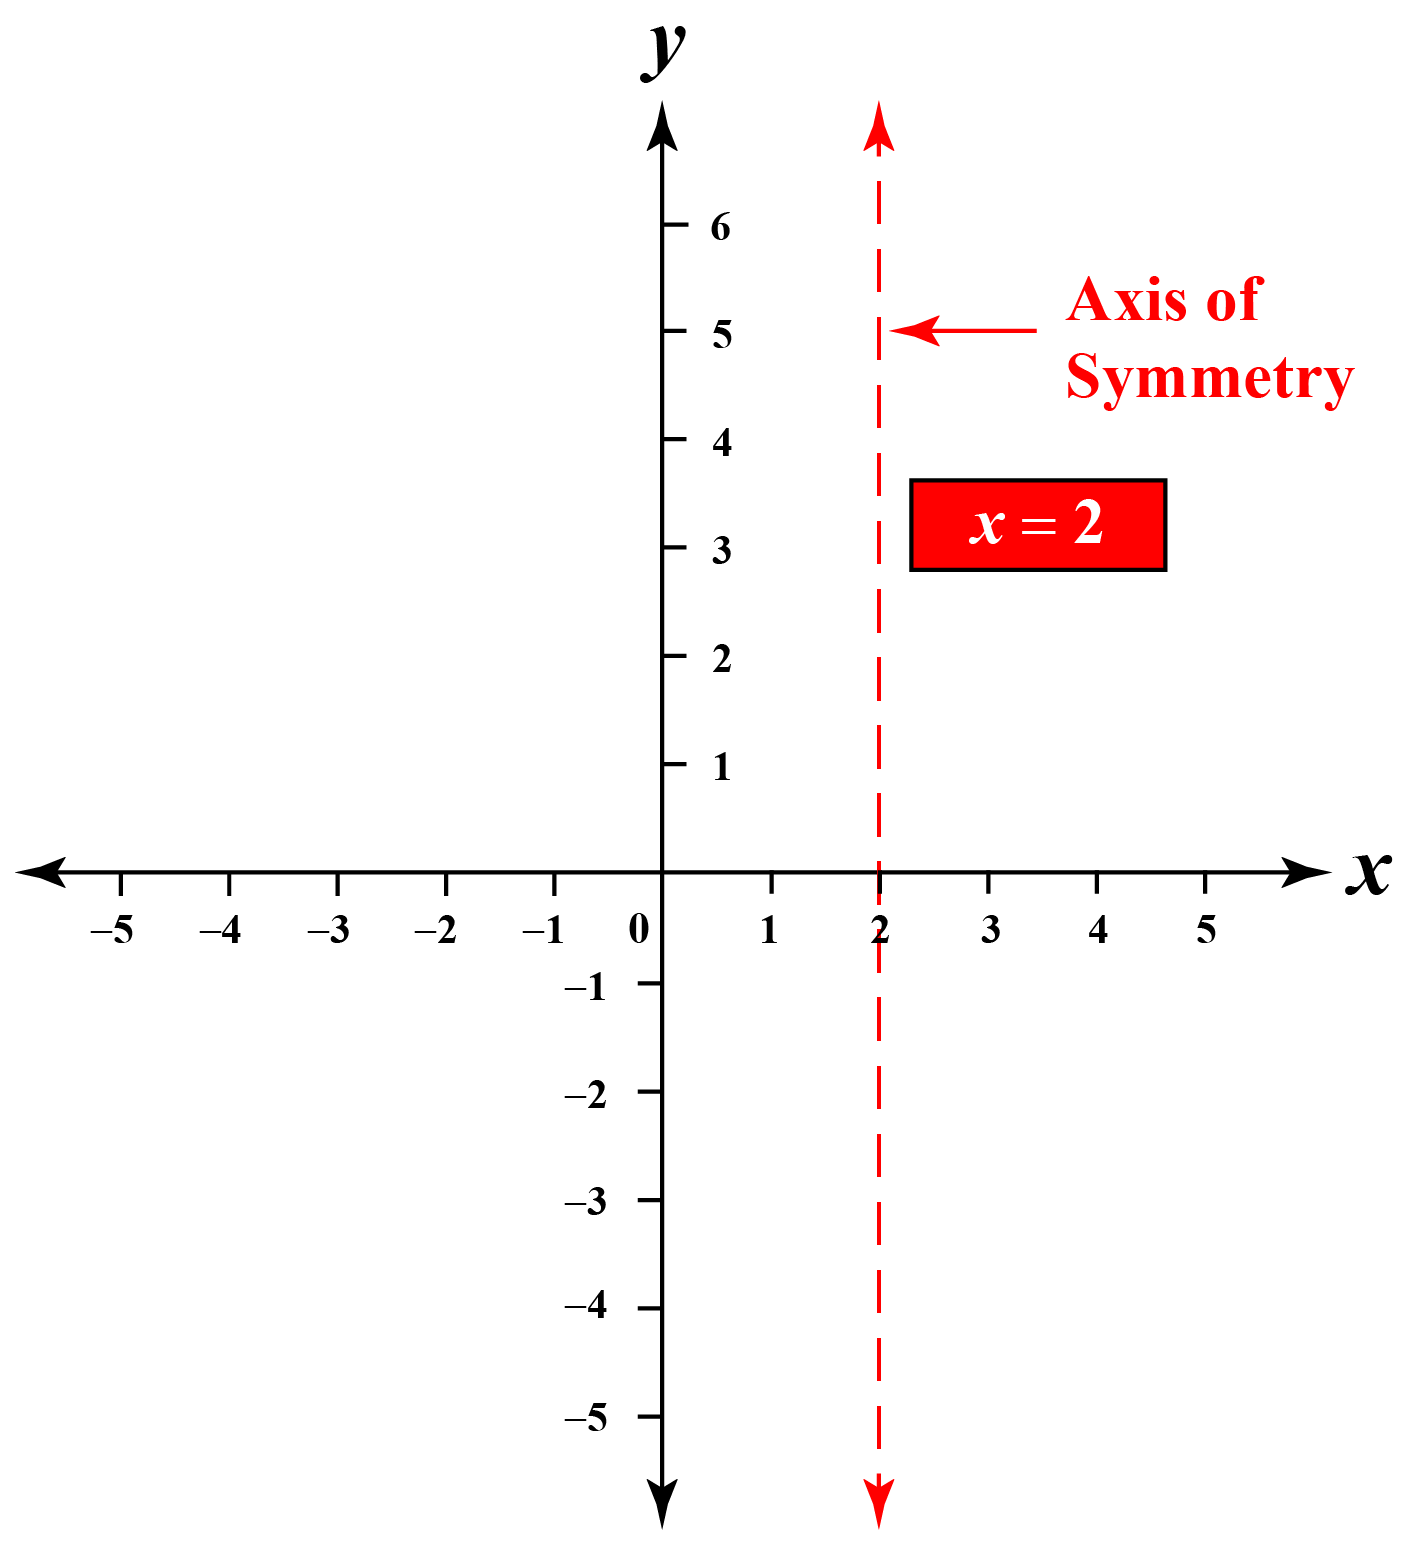 Axis of symmetry in graph